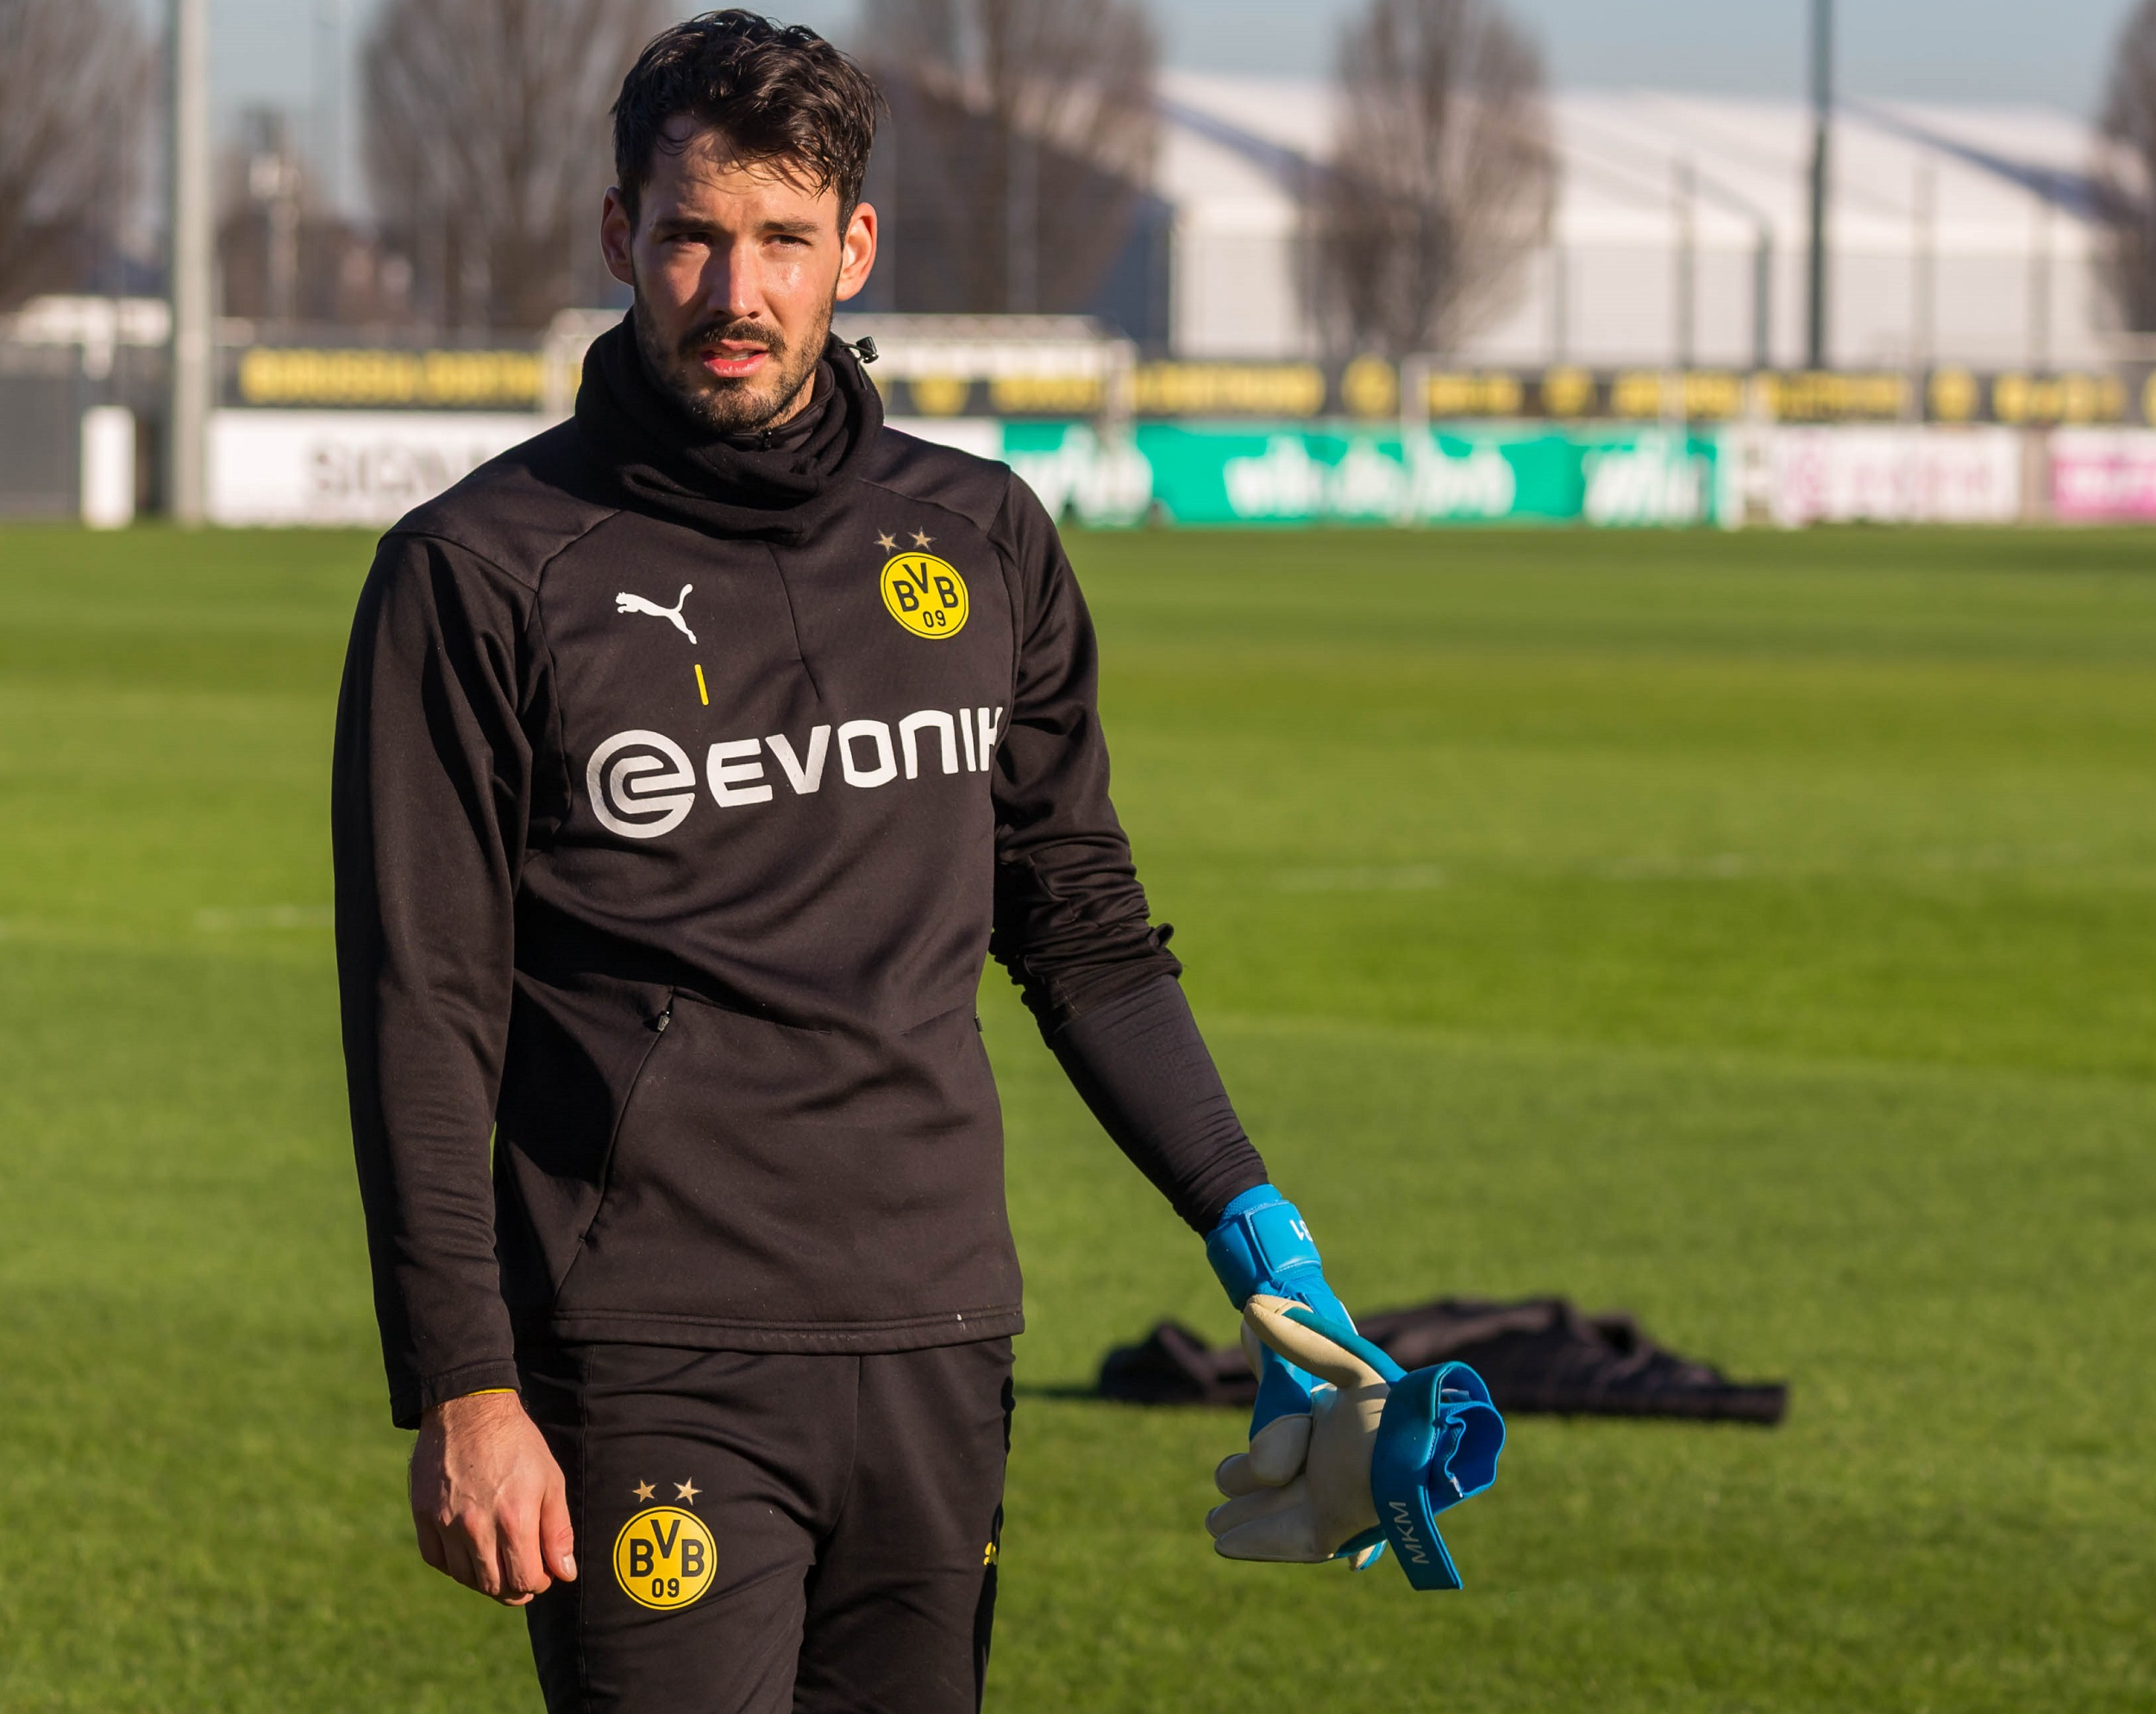 Report: Dortmund draw up list of candidates to replace Roman Bürki